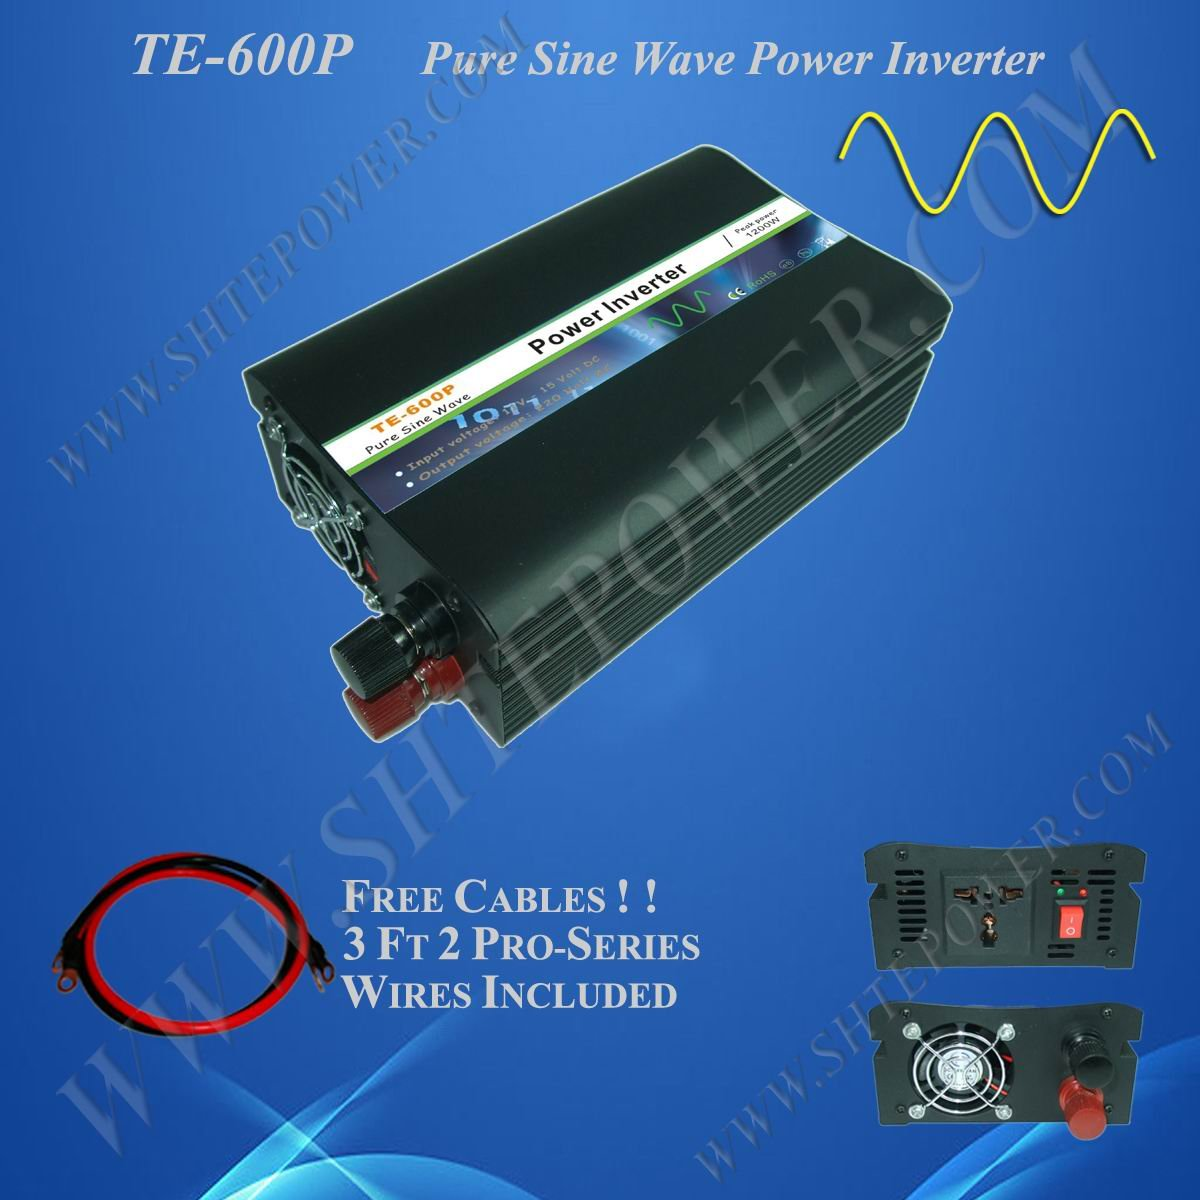 цена на Off Grid Solar Power Inverter, 600w 24vdc to 120vac inverter, Pure Sine Wave Power Invertor